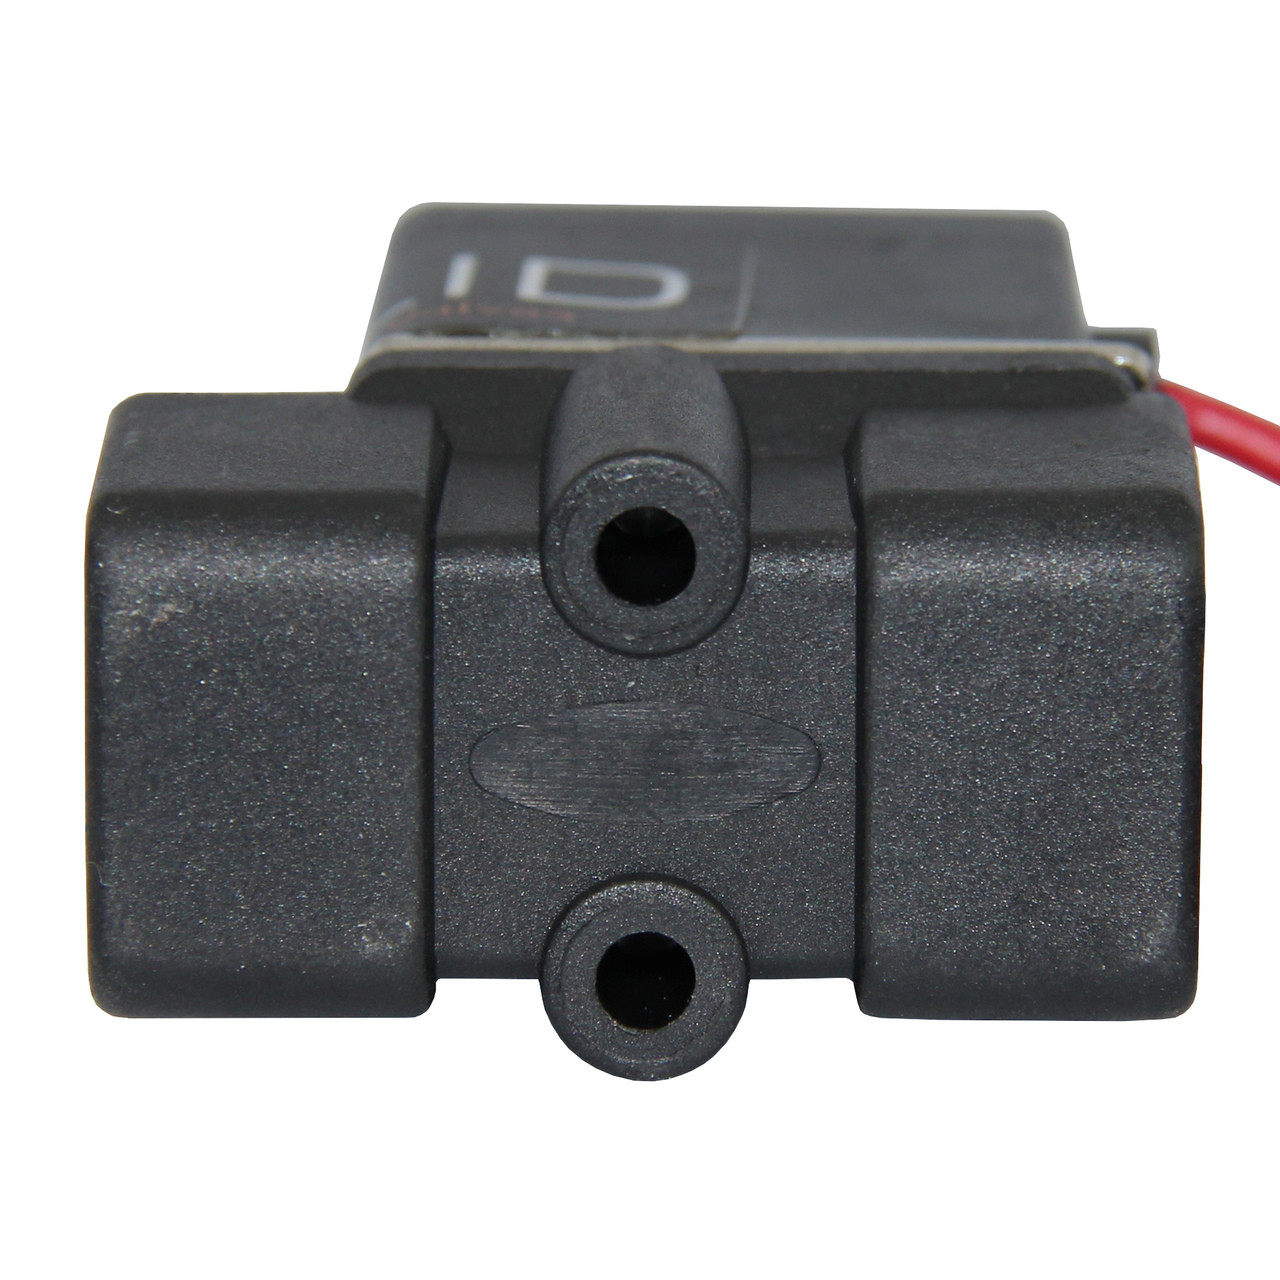 "U.S. Solid Electric Solenoid Valve- 1/8"" 12V DC Solenoid Valve Plastic(Nylon) Body Normally Closed, NBR SEAL"